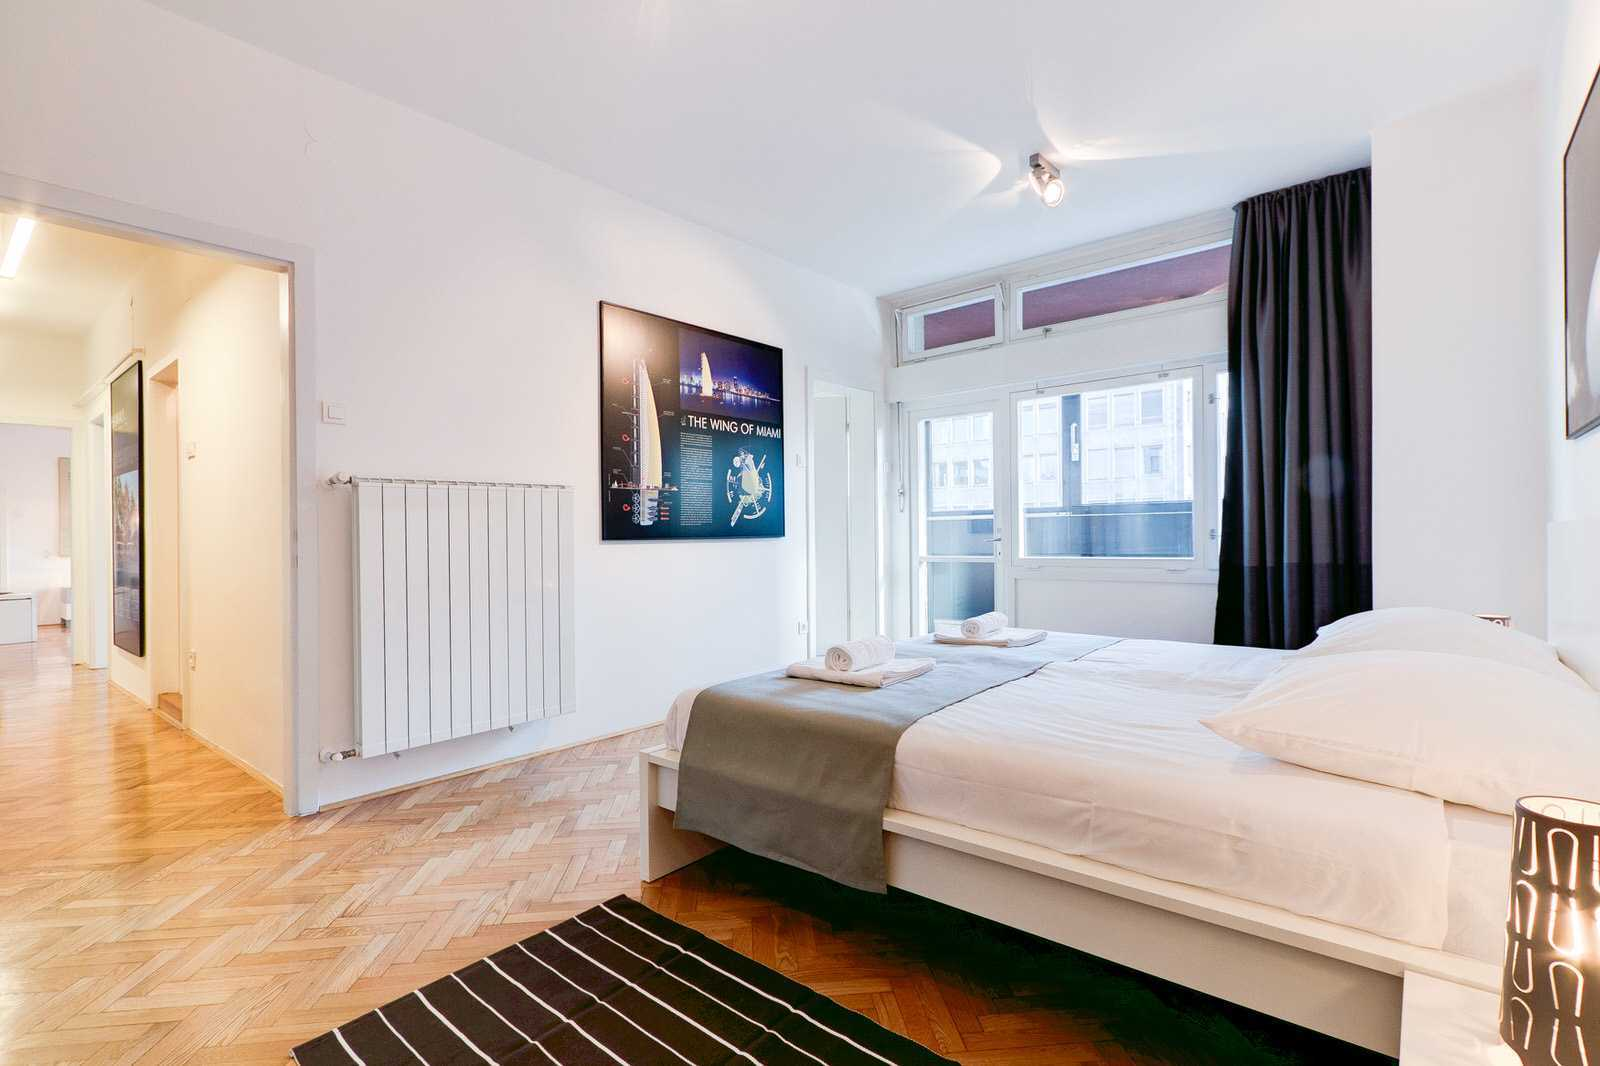 Master bedroom has a king size bed and en suit bathroom with a shower plus a balcony exit.